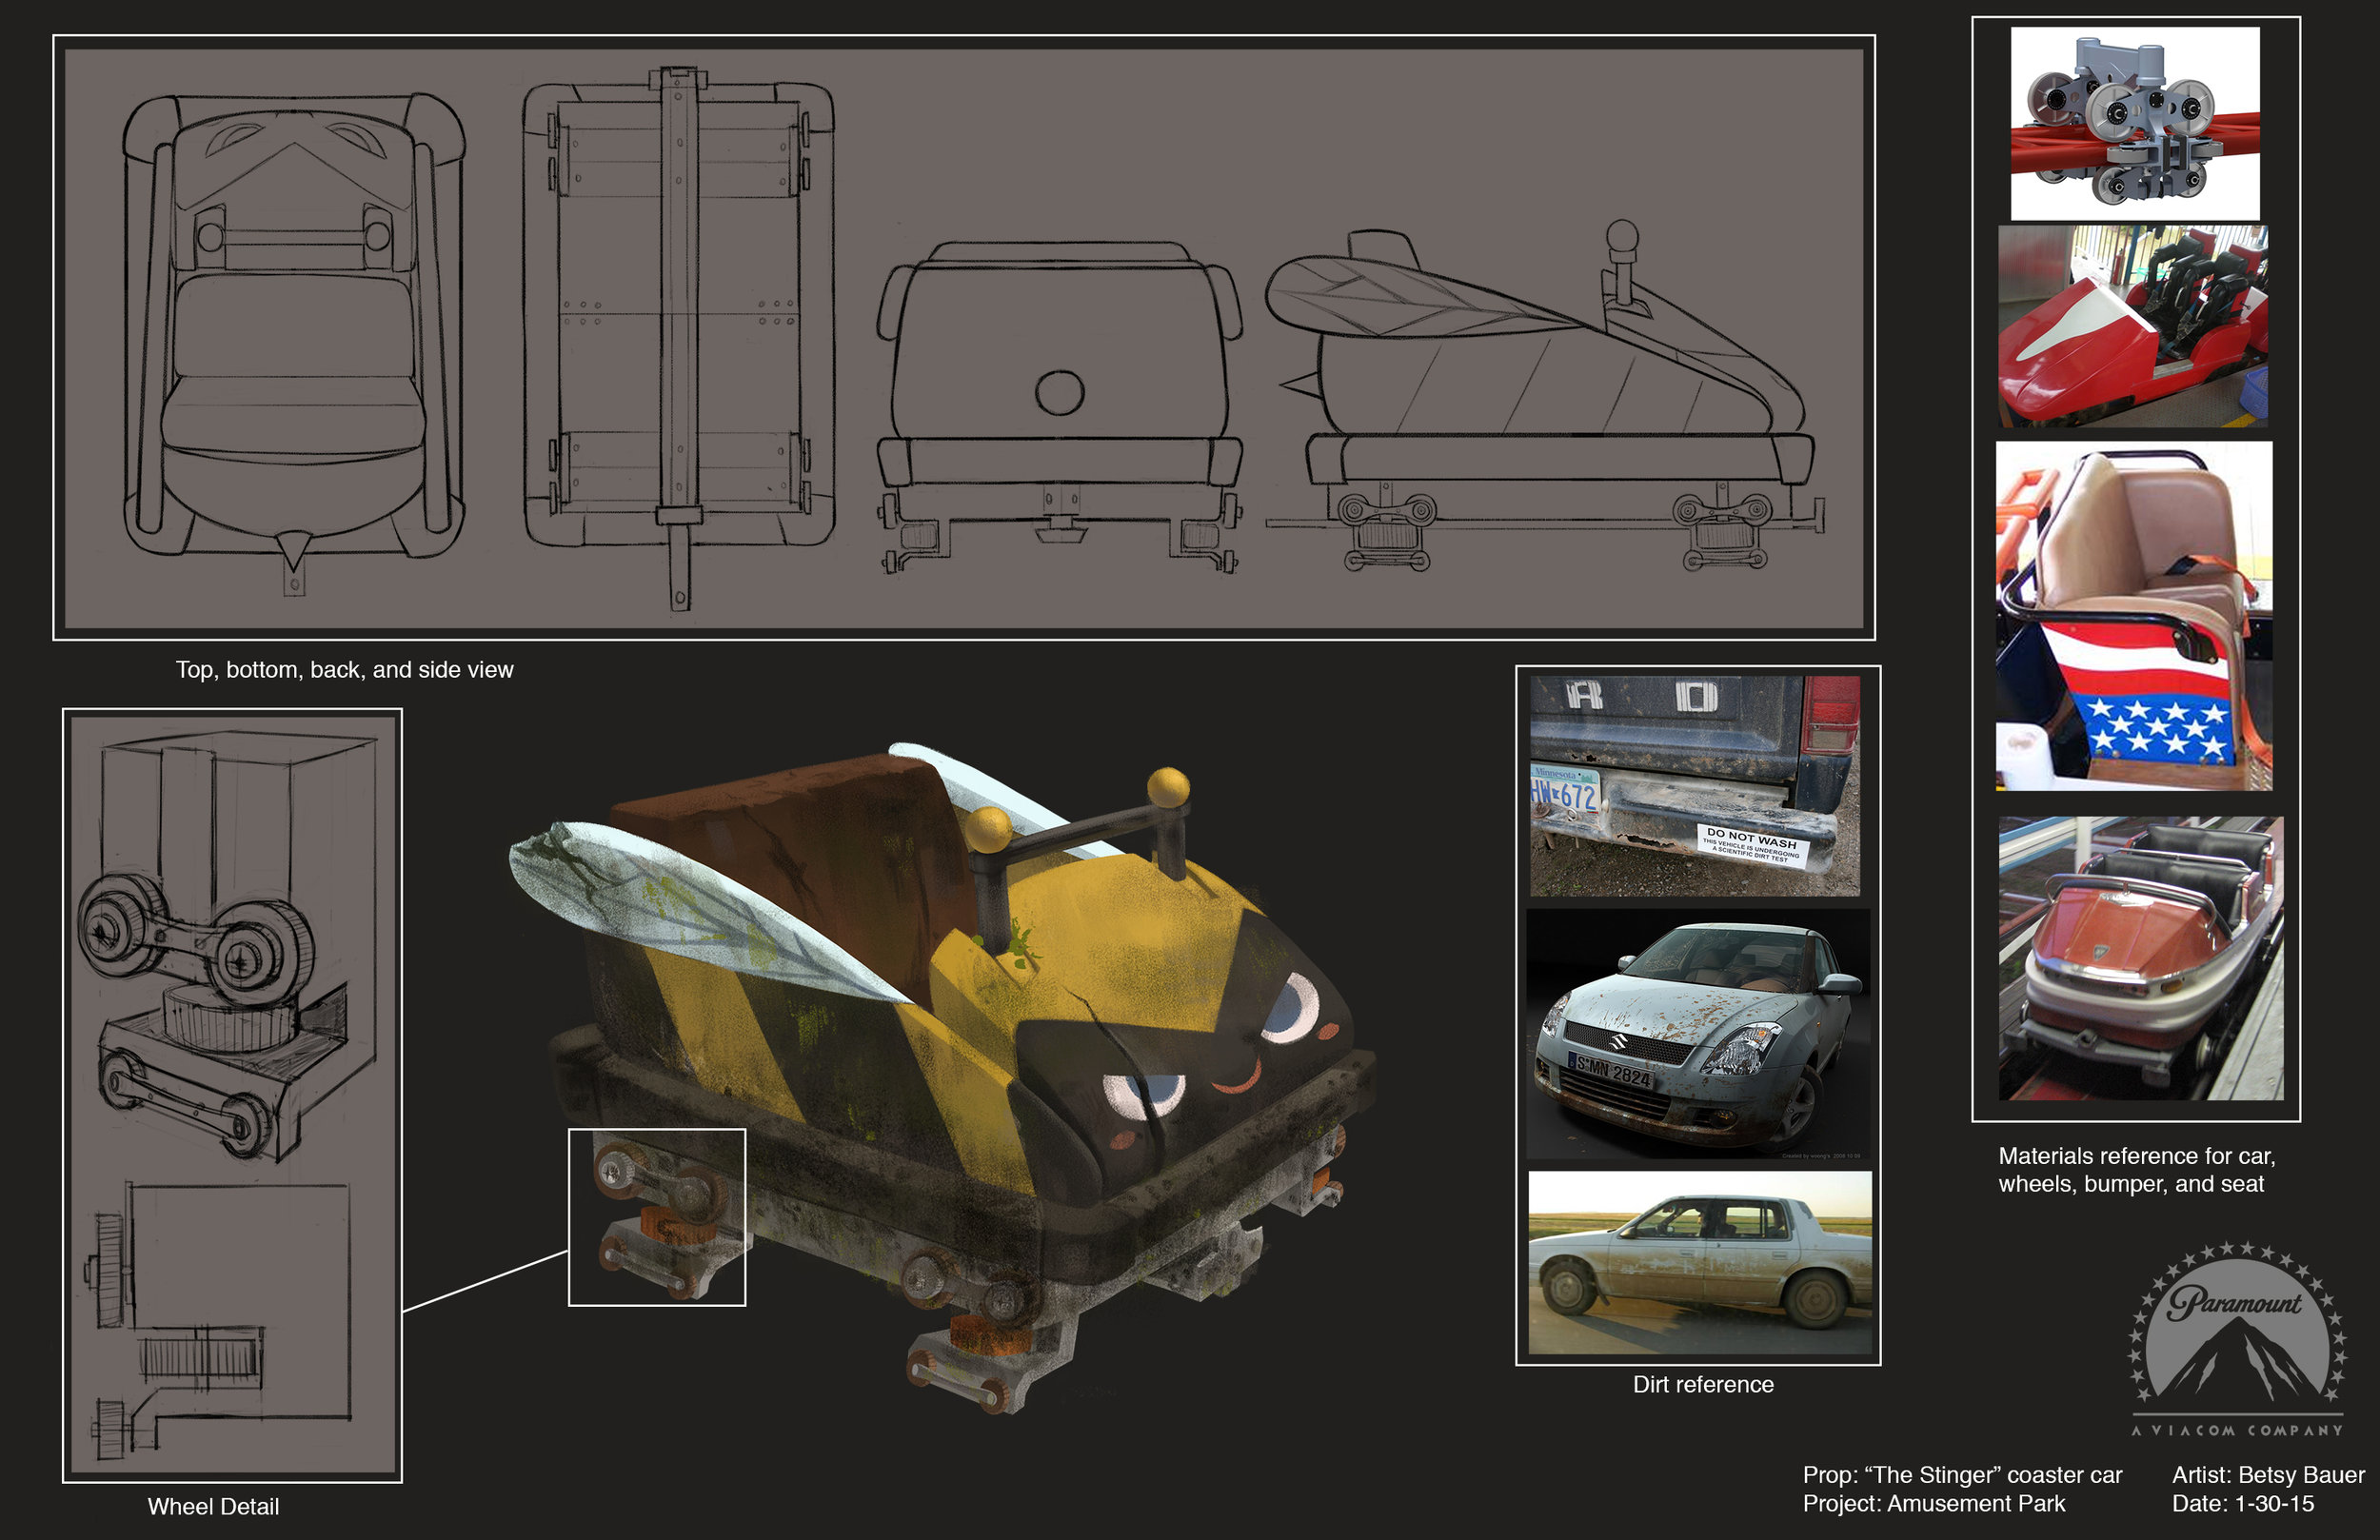 This was the final cart design chosen from the explorations above.